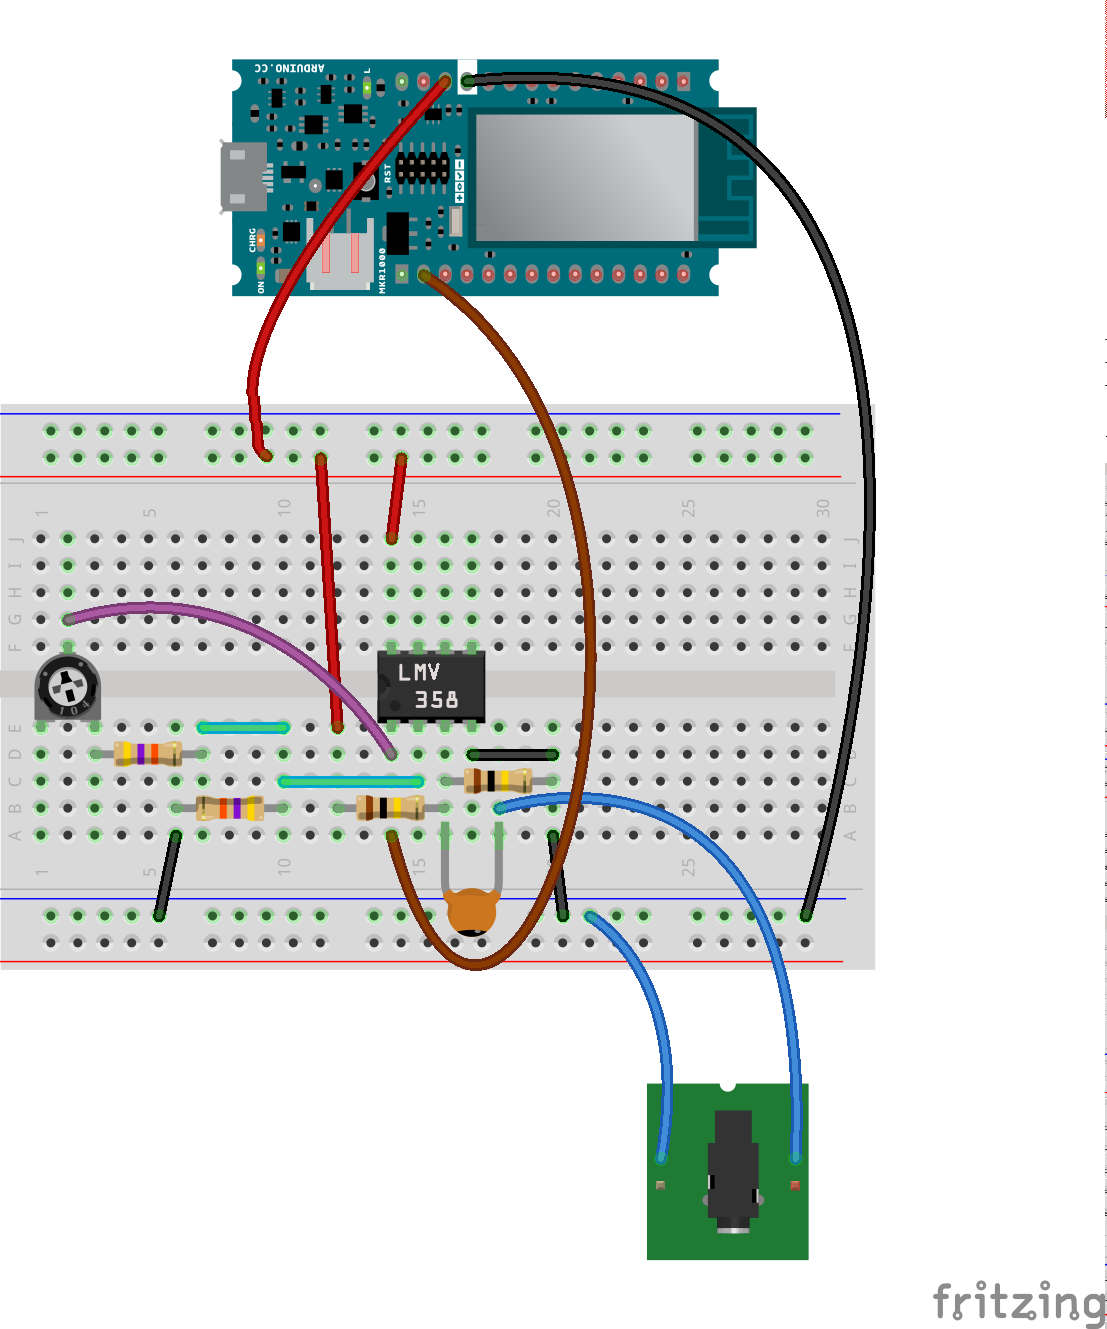 Arduino Analogtomidi Audio Tone Generator Circuit In Order To Get The Most Dynamic Range Even From Low Level Inputs Consist Of A Non Inverting Amplifier That Brings Amplitude Signal